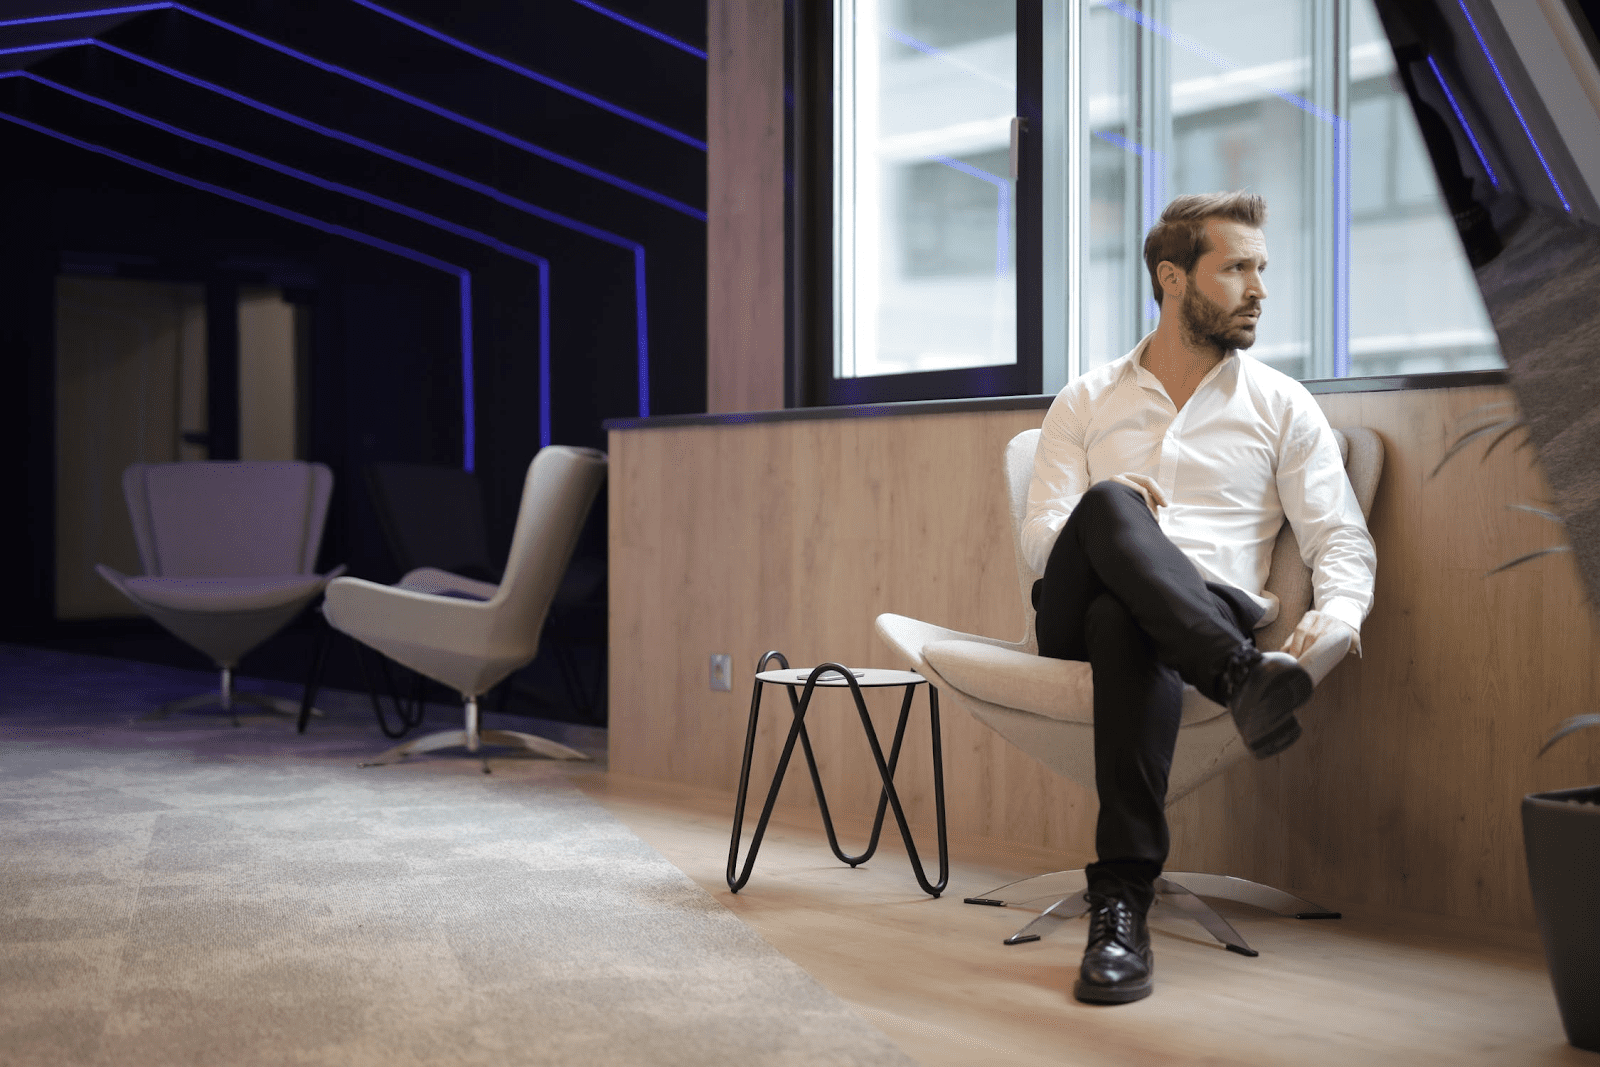 man sitting alone in an office